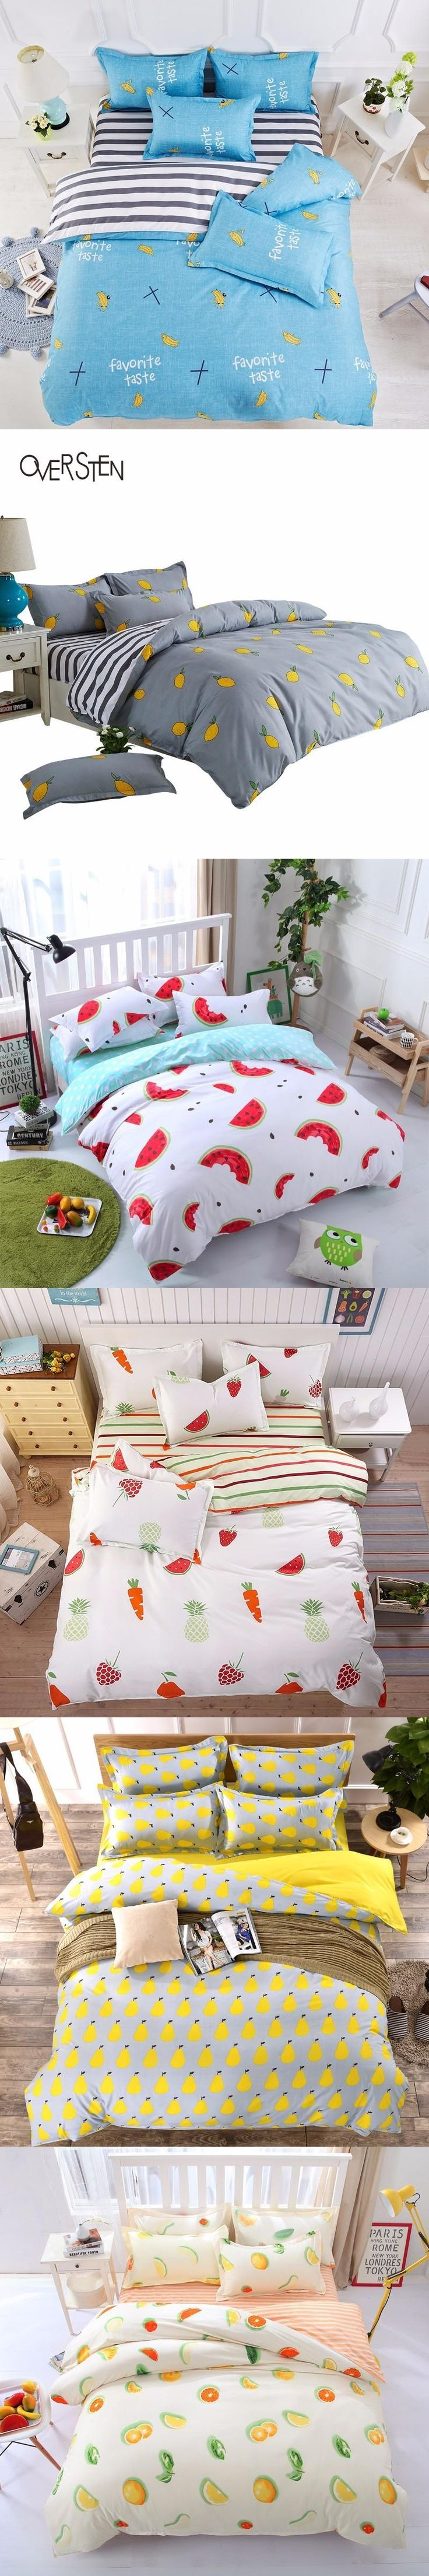 OVERSTEN Dobby Style Double Single Bedding Set Twin Queen King Size Duvet Cover Set Fruits Pattern Bedding Kit Bed Linen